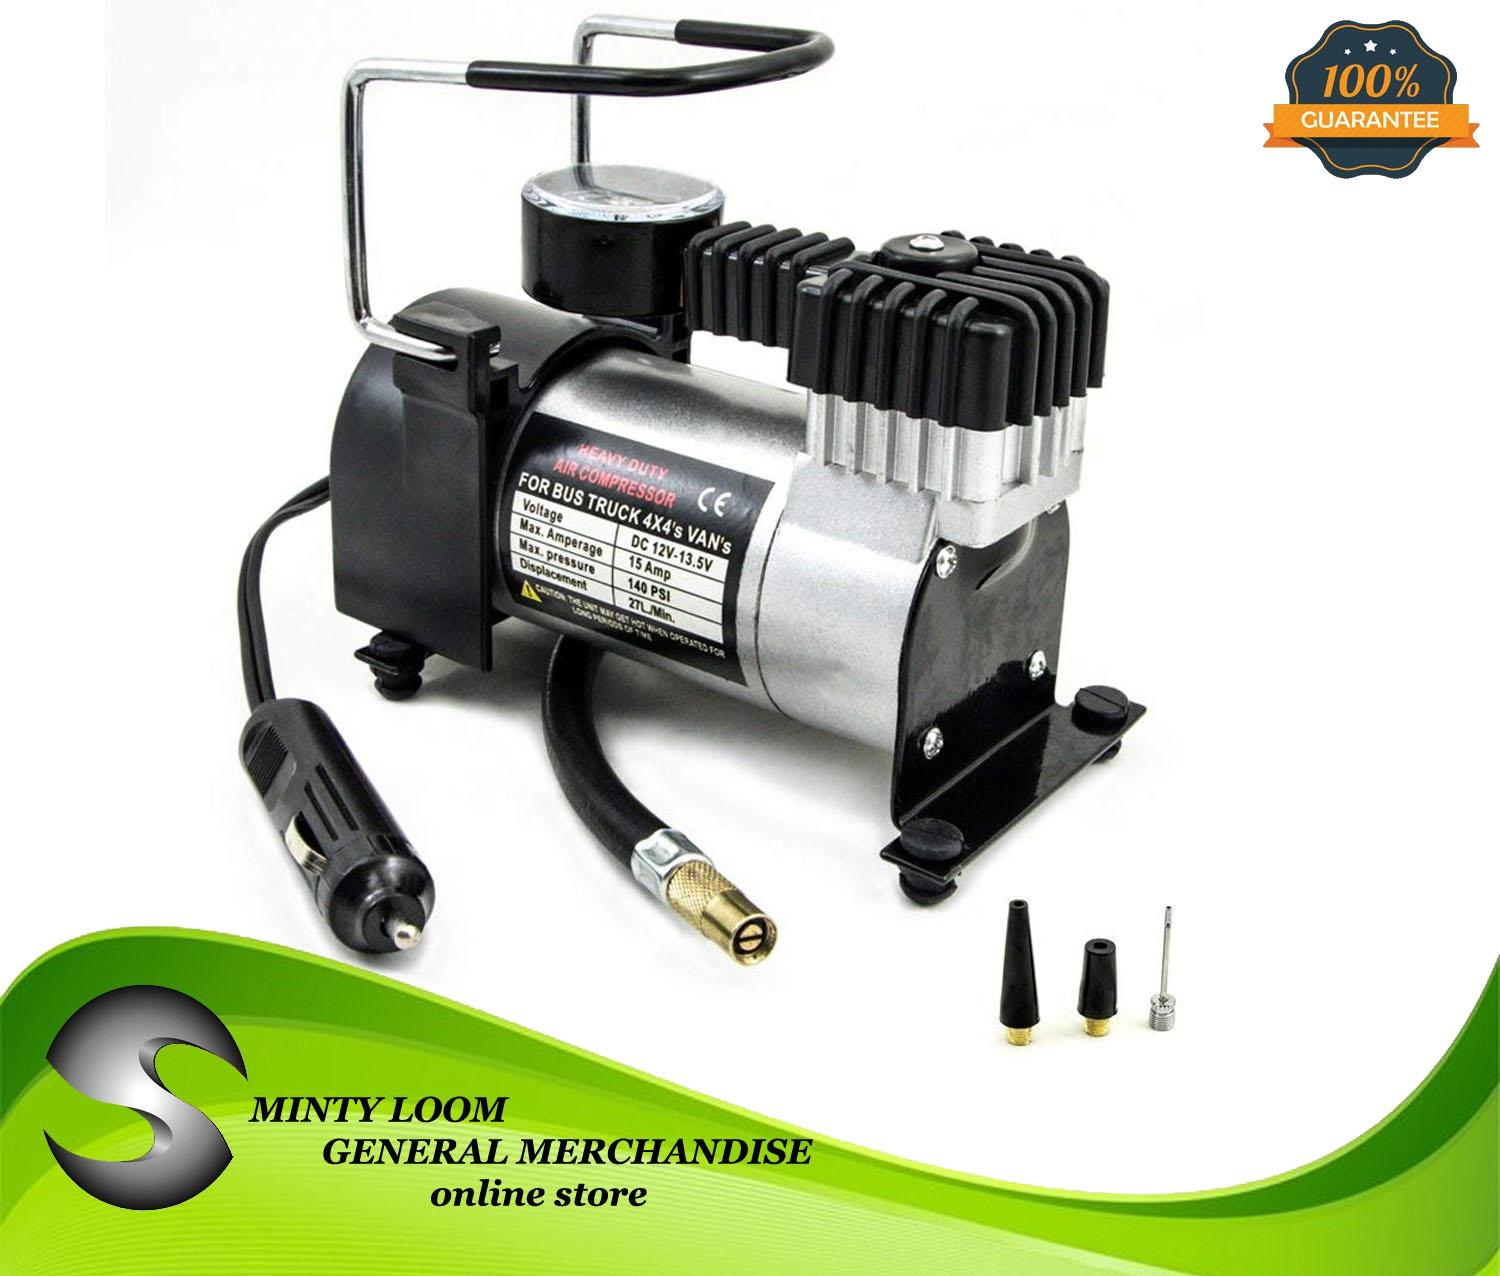 hight resolution of air compressor heavy duty pump electric tire inflator 12v 140psi 965kpa car care tool